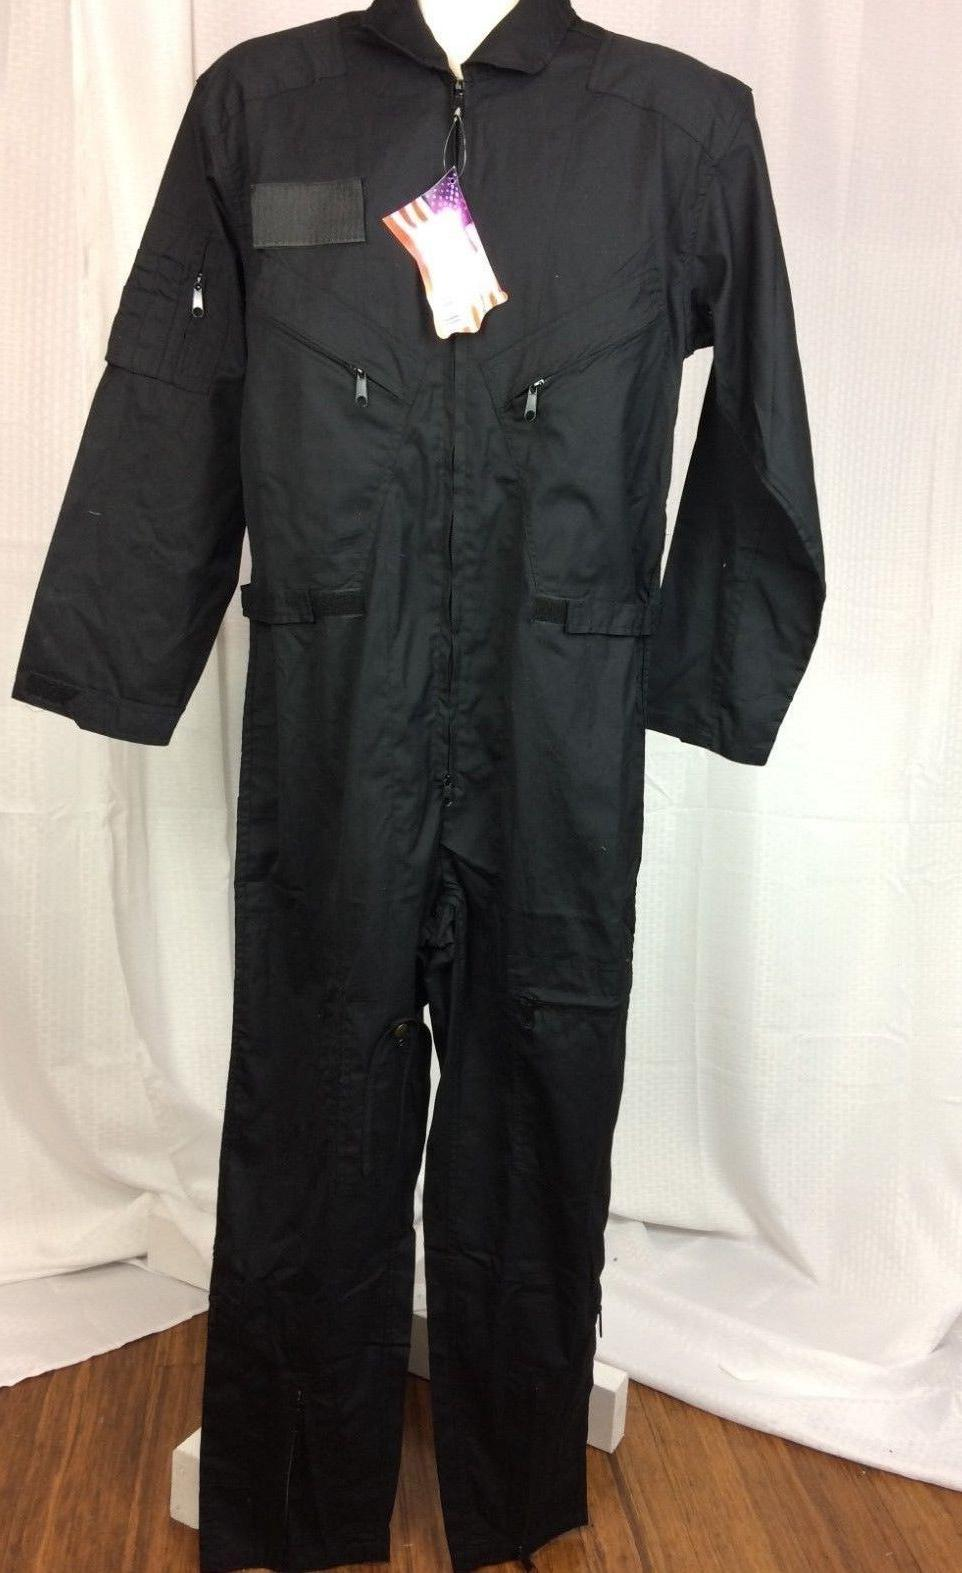 NWT Rugged Outdoor Apparel Coveralls Size XS